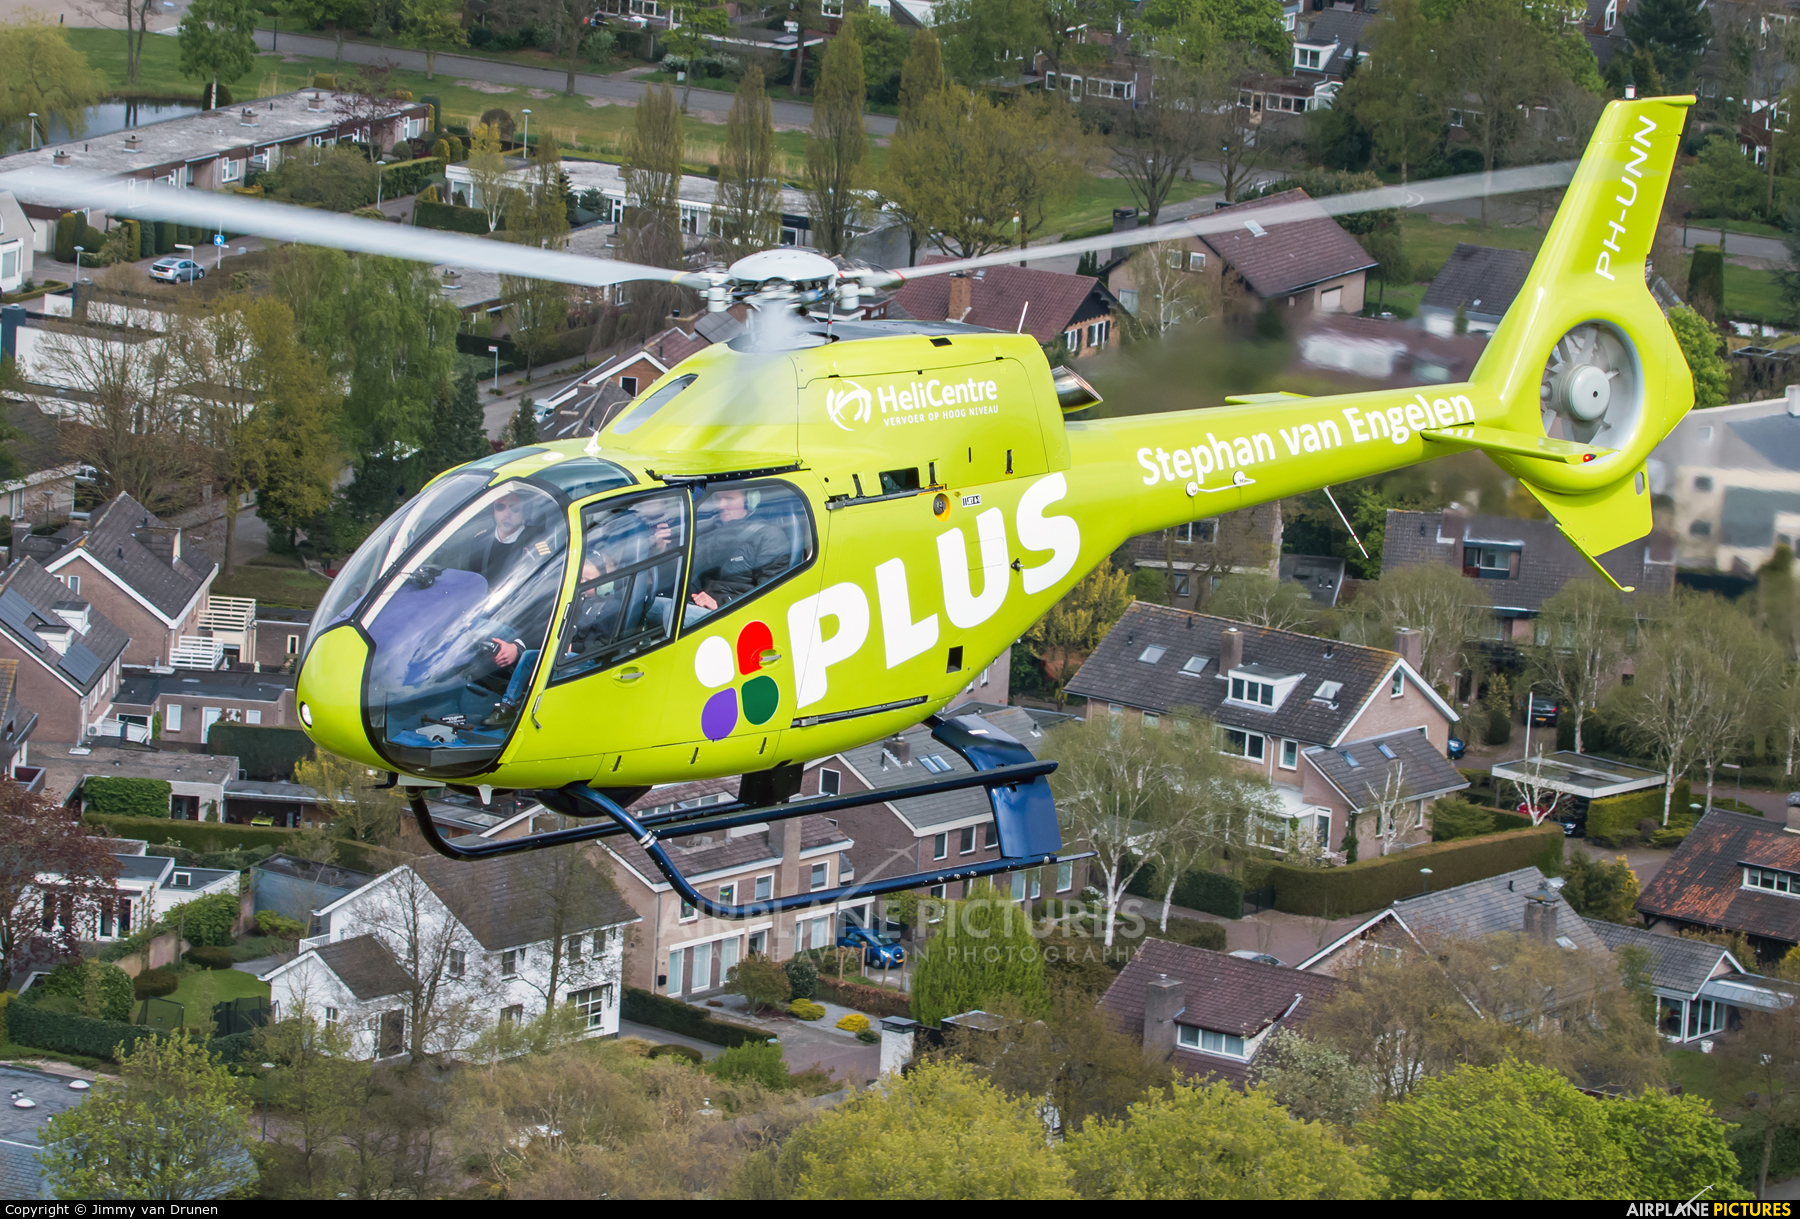 Helicentre PH-UNN aircraft at In Flight - Netherlands